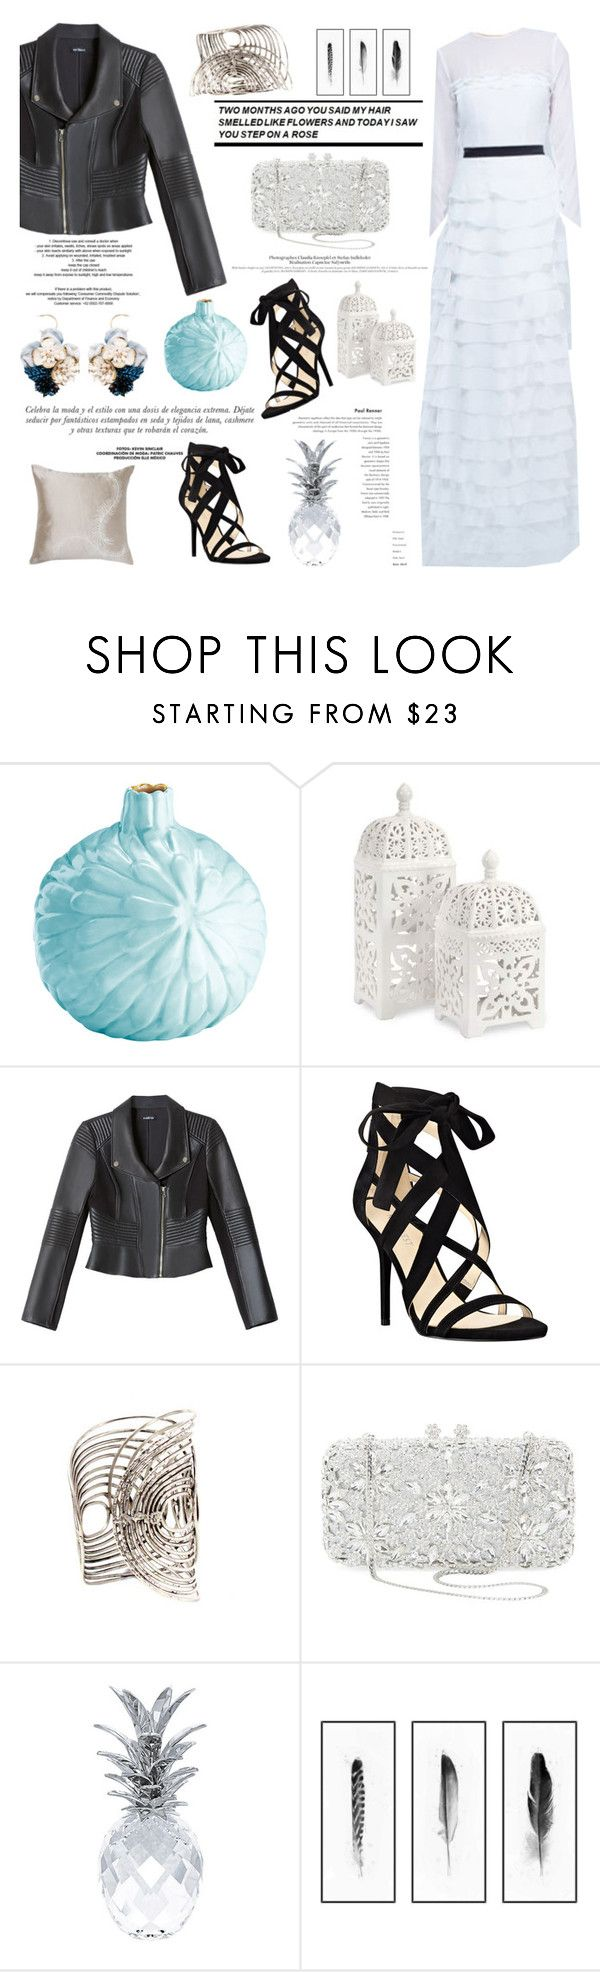 """""""Frozen Queen"""" by nellieatelier ❤ liked on Polyvore featuring Magenta, Imax Home, Bebe, Sinclair, Nine West, Natasha Couture, Behance, Swarovski and Kim Salmela"""